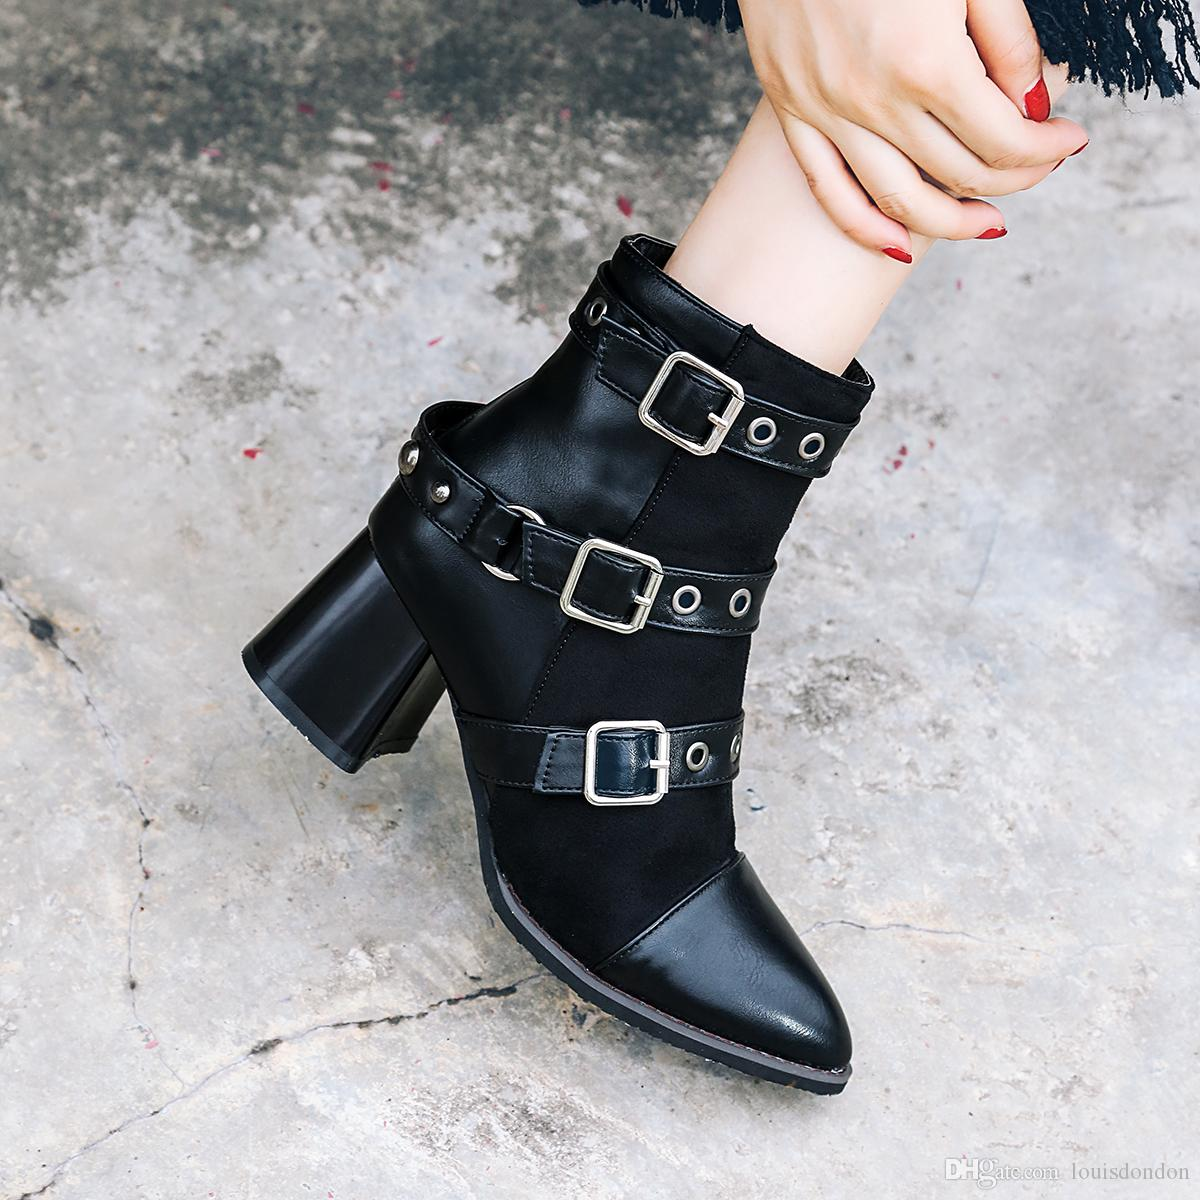 Street Punk Style Wide Buckle Strap Black Suede Ladies 60 mm Chunky Heels Ankle Boots Women Shoes